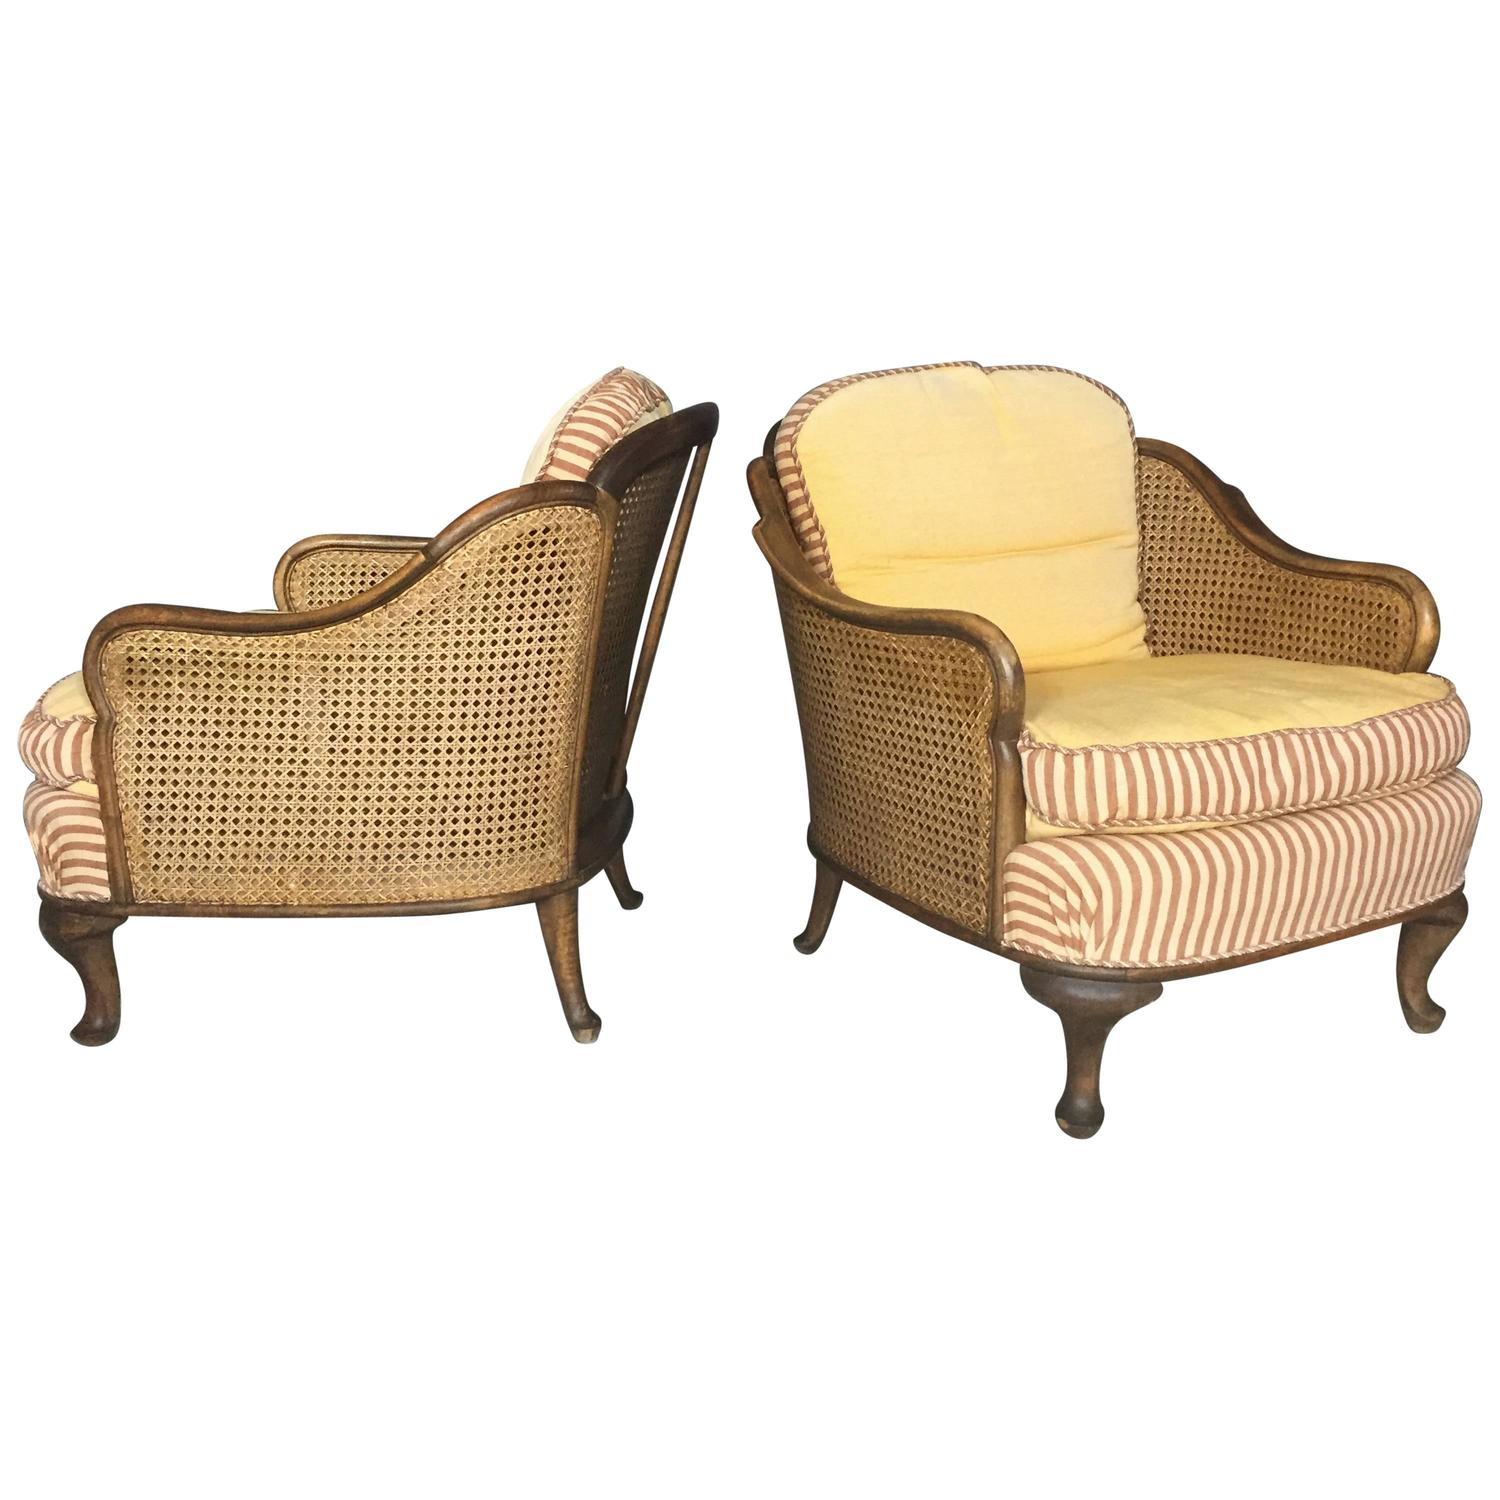 1930 cane back sofa eco friendly australia pair of bergere tub chairs walnut and sweden 1930s